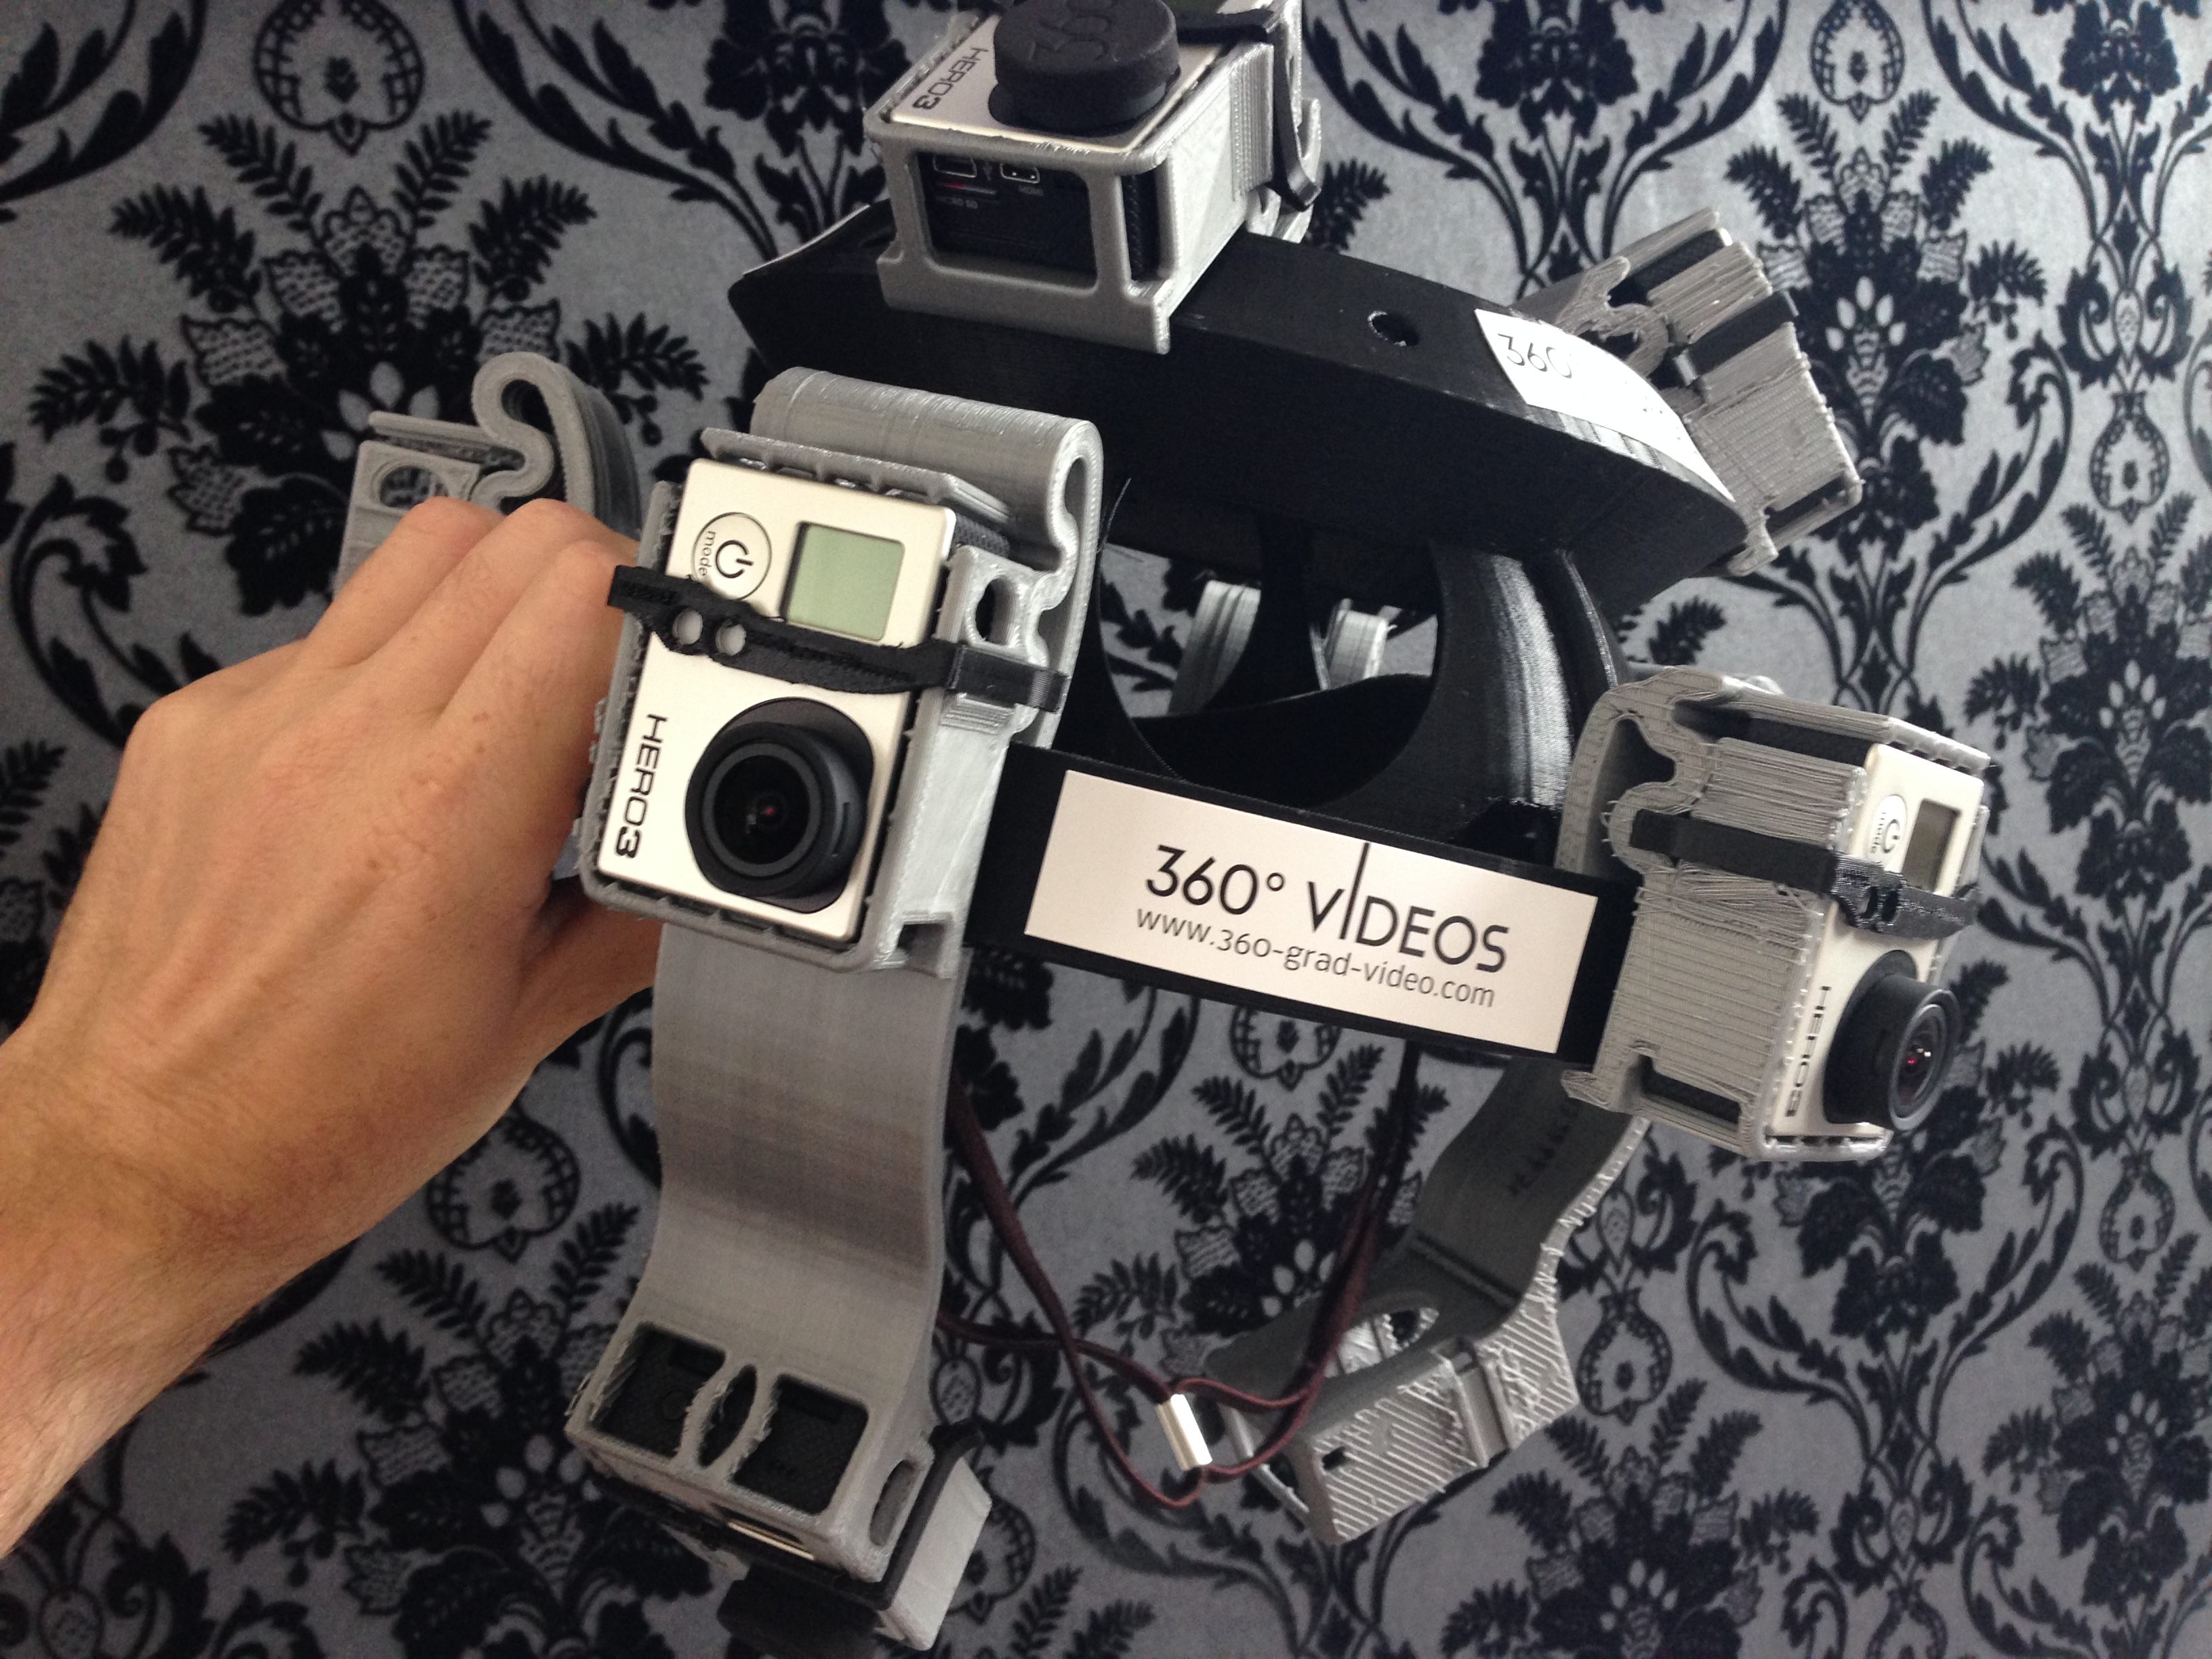 360 degree video gear